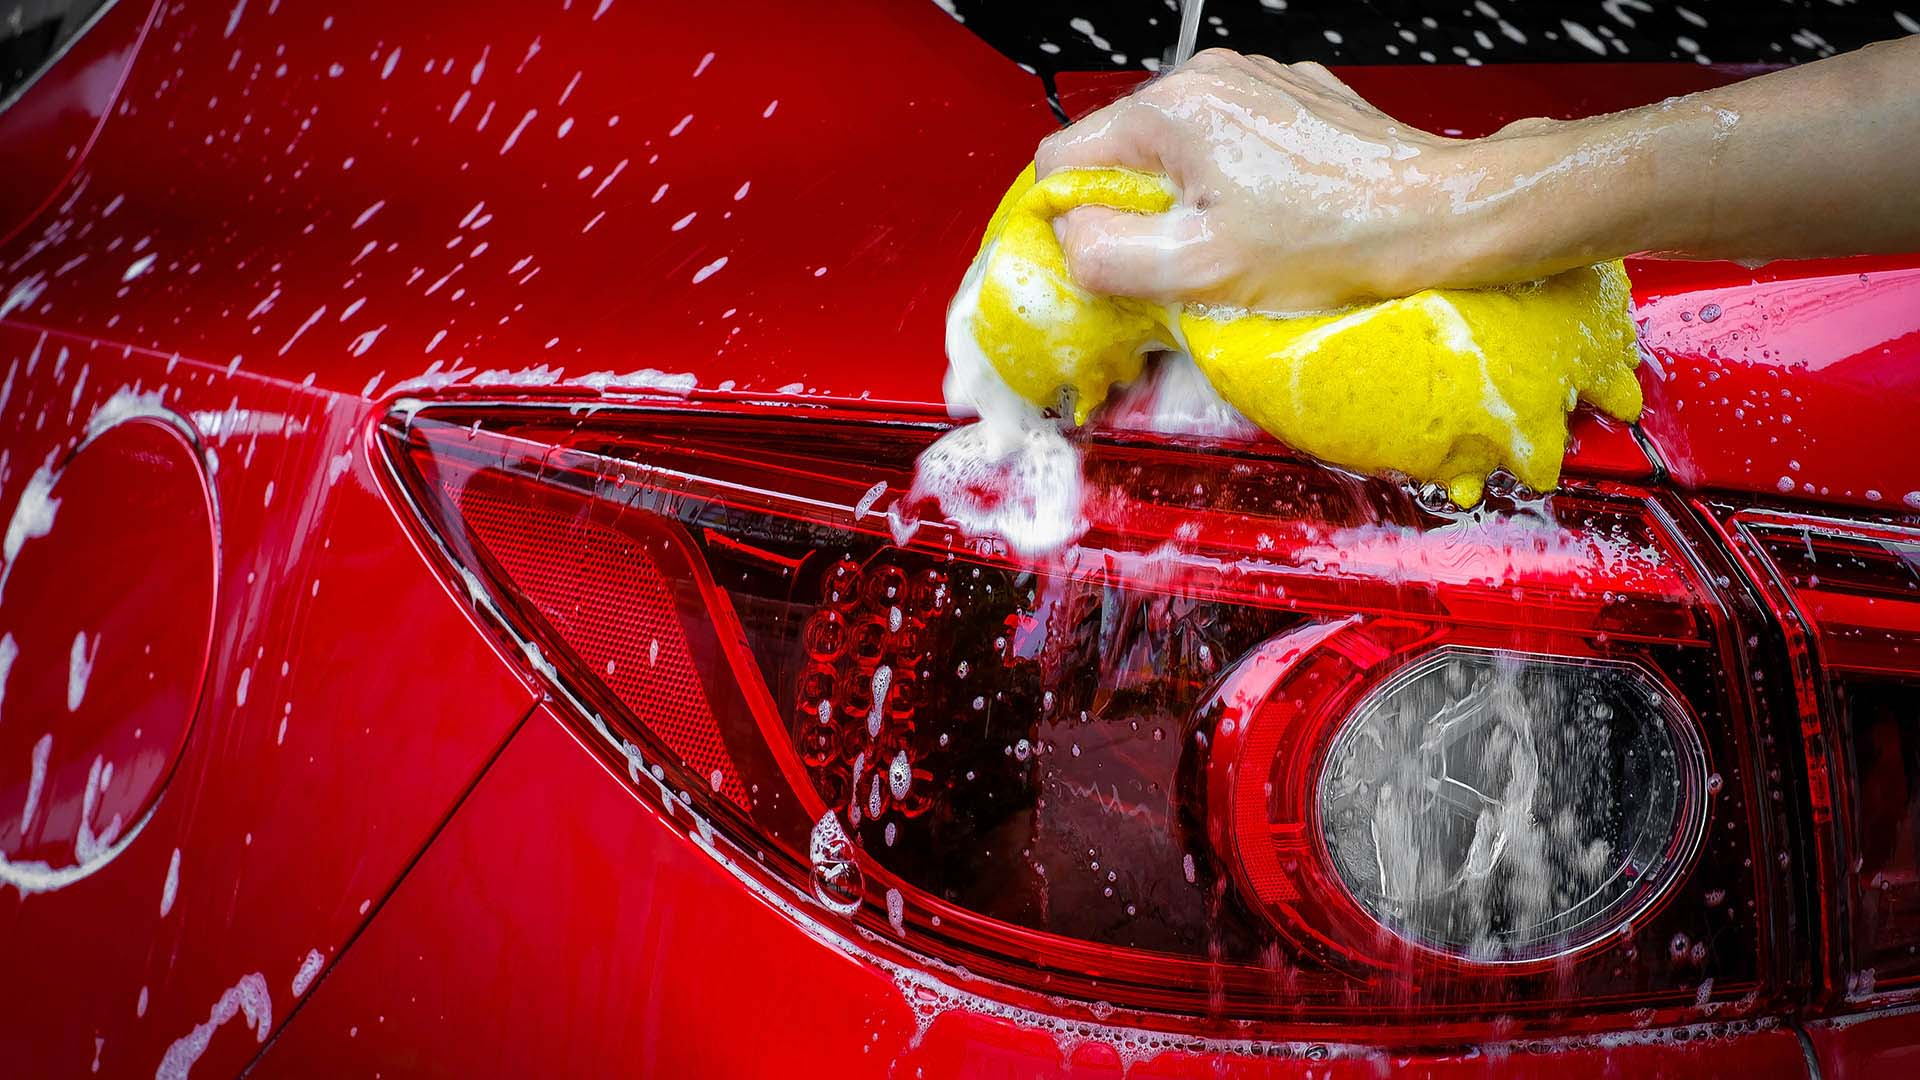 Person washing red car with soapy water and a yellow sponge